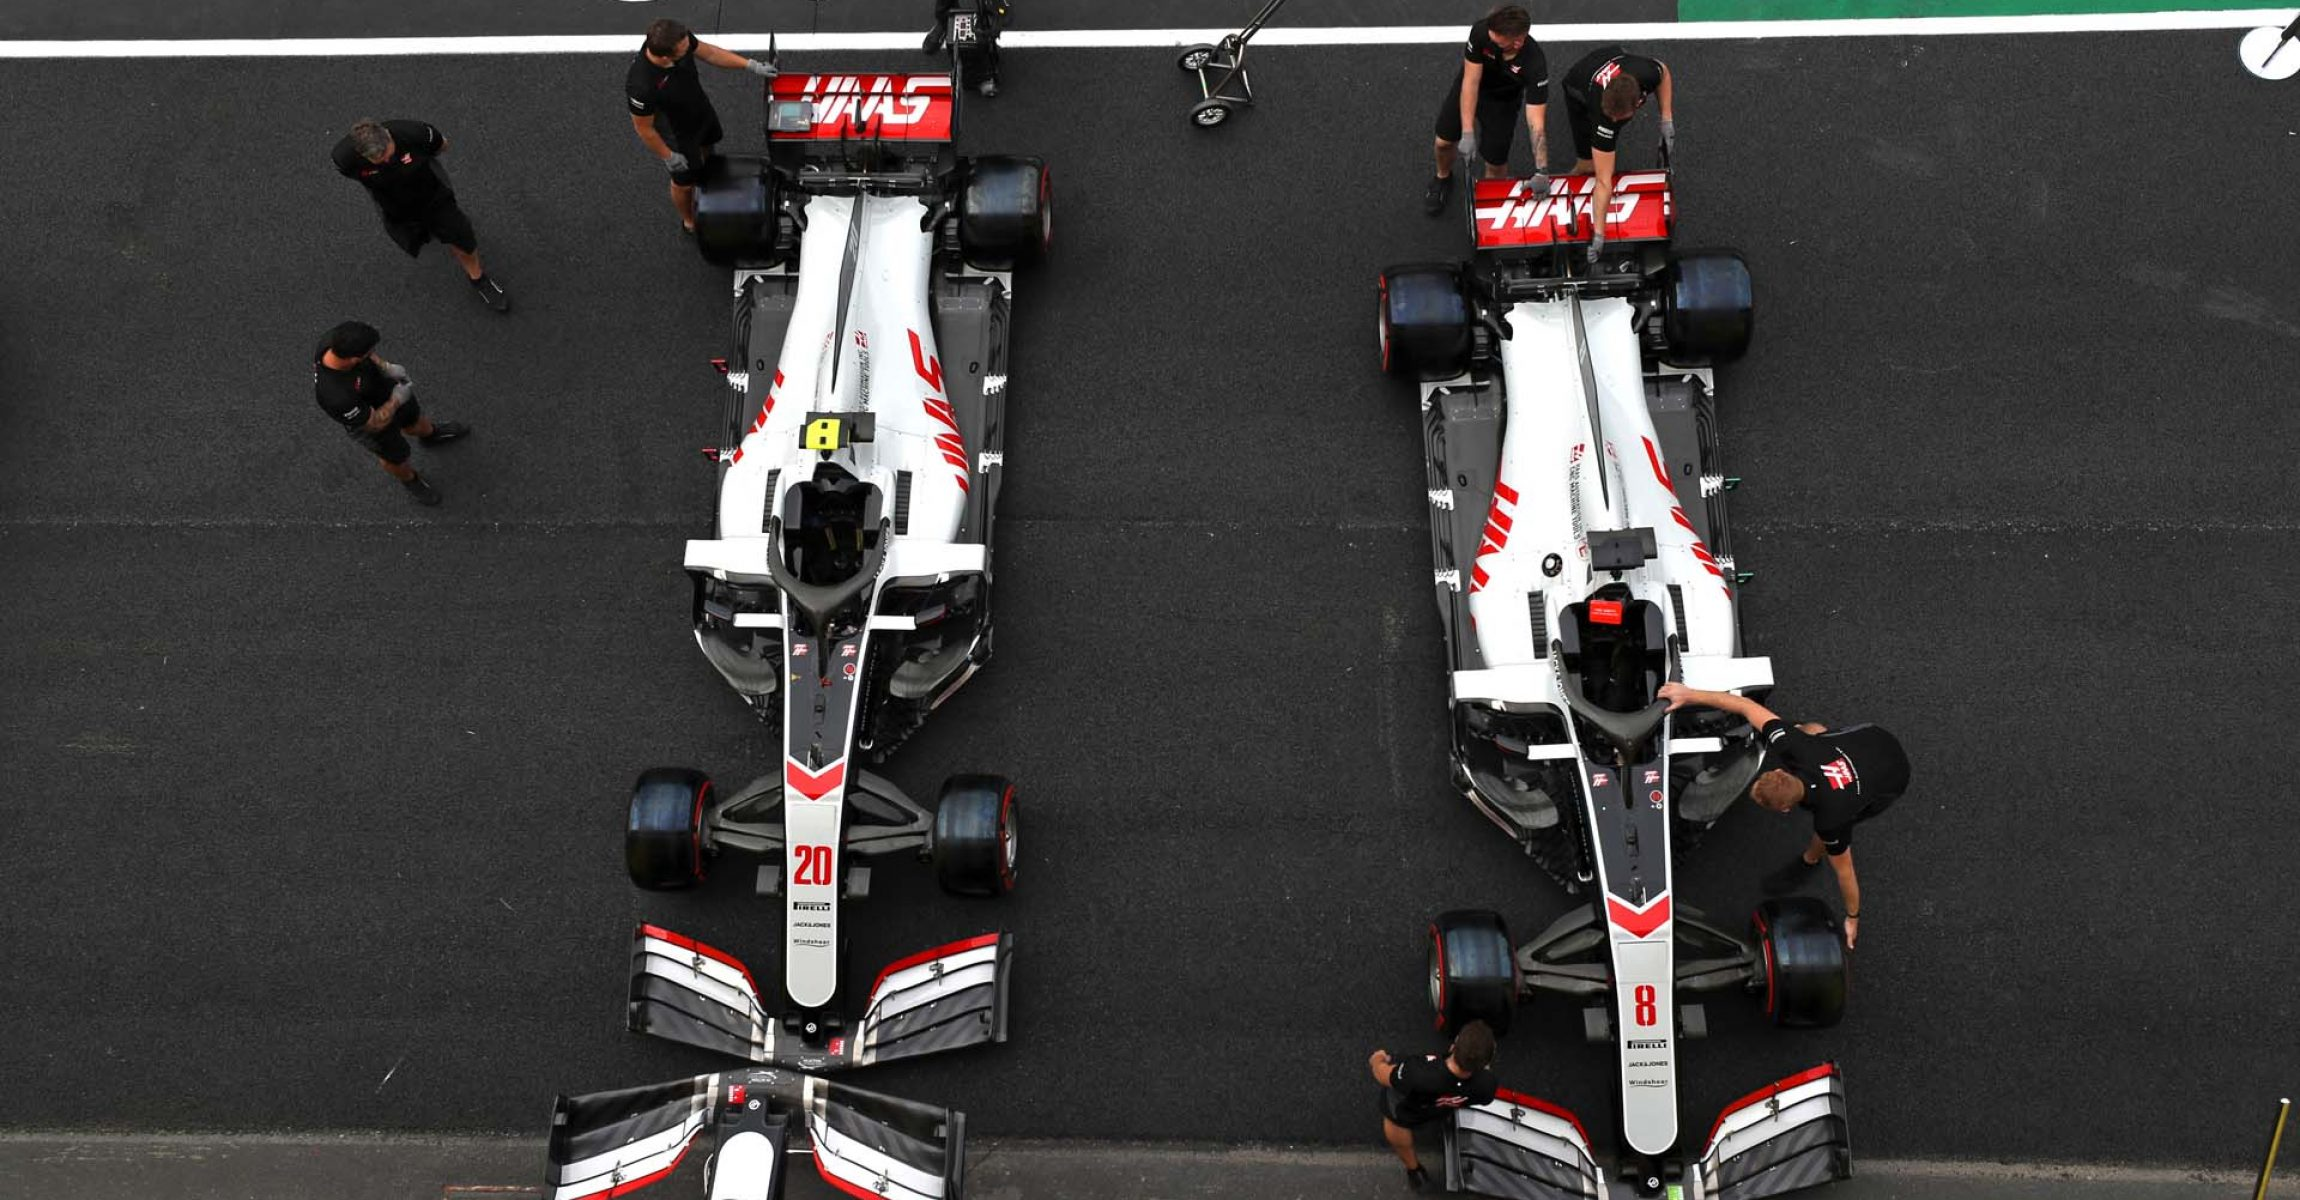 MUGELLO CIRCUIT, ITALY - SEPTEMBER 10: The Kevin Magnussen Haas VF-20 and Romain Grosjean Haas VF-20 in the pit lane during the Tuscany GP at Mugello Circuit on Thursday September 10, 2020, Italy. (Photo by Charles Coates / LAT Images)